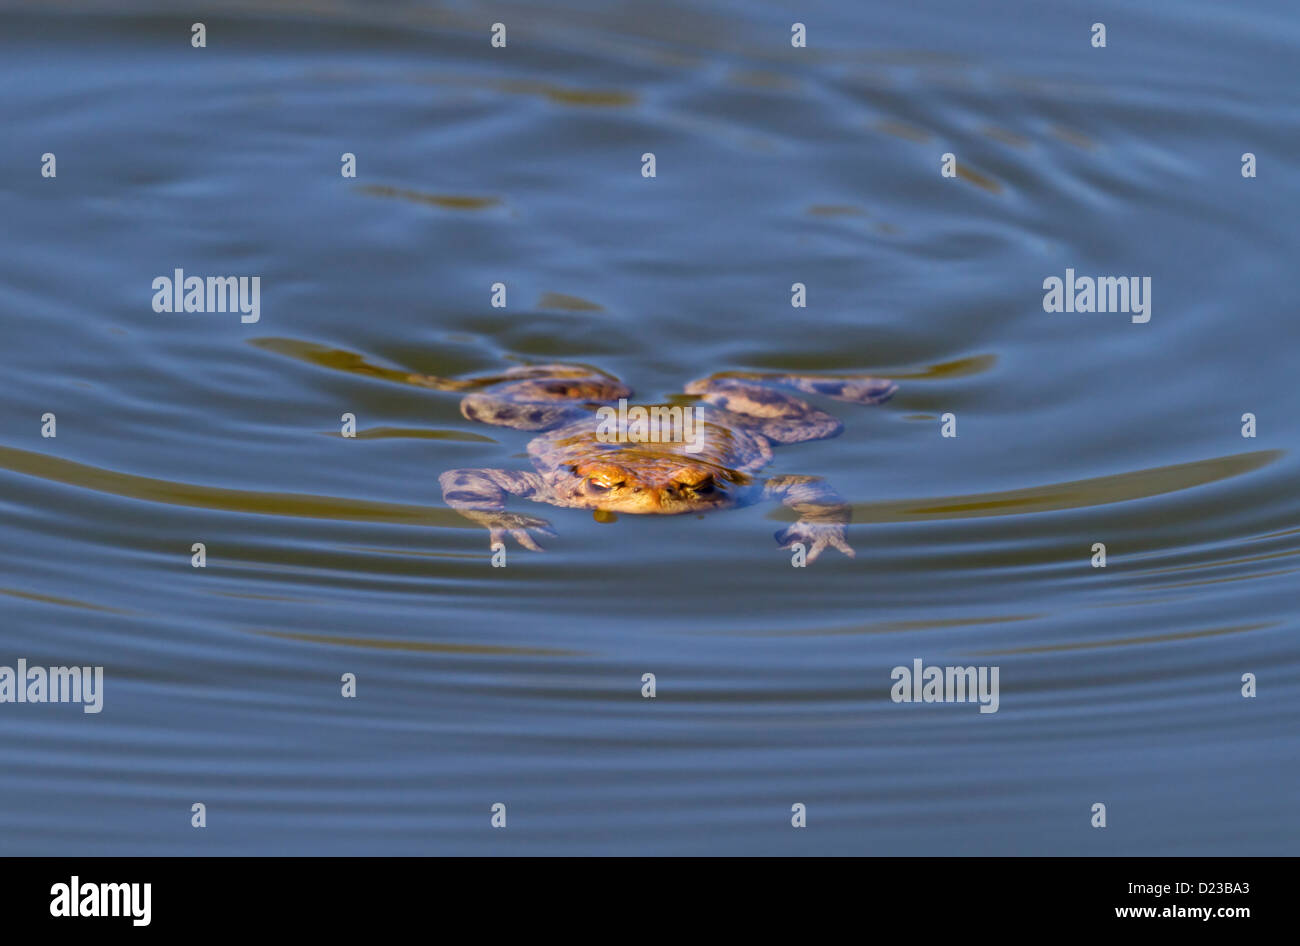 Common toads / Bufo bufo Stock Photo